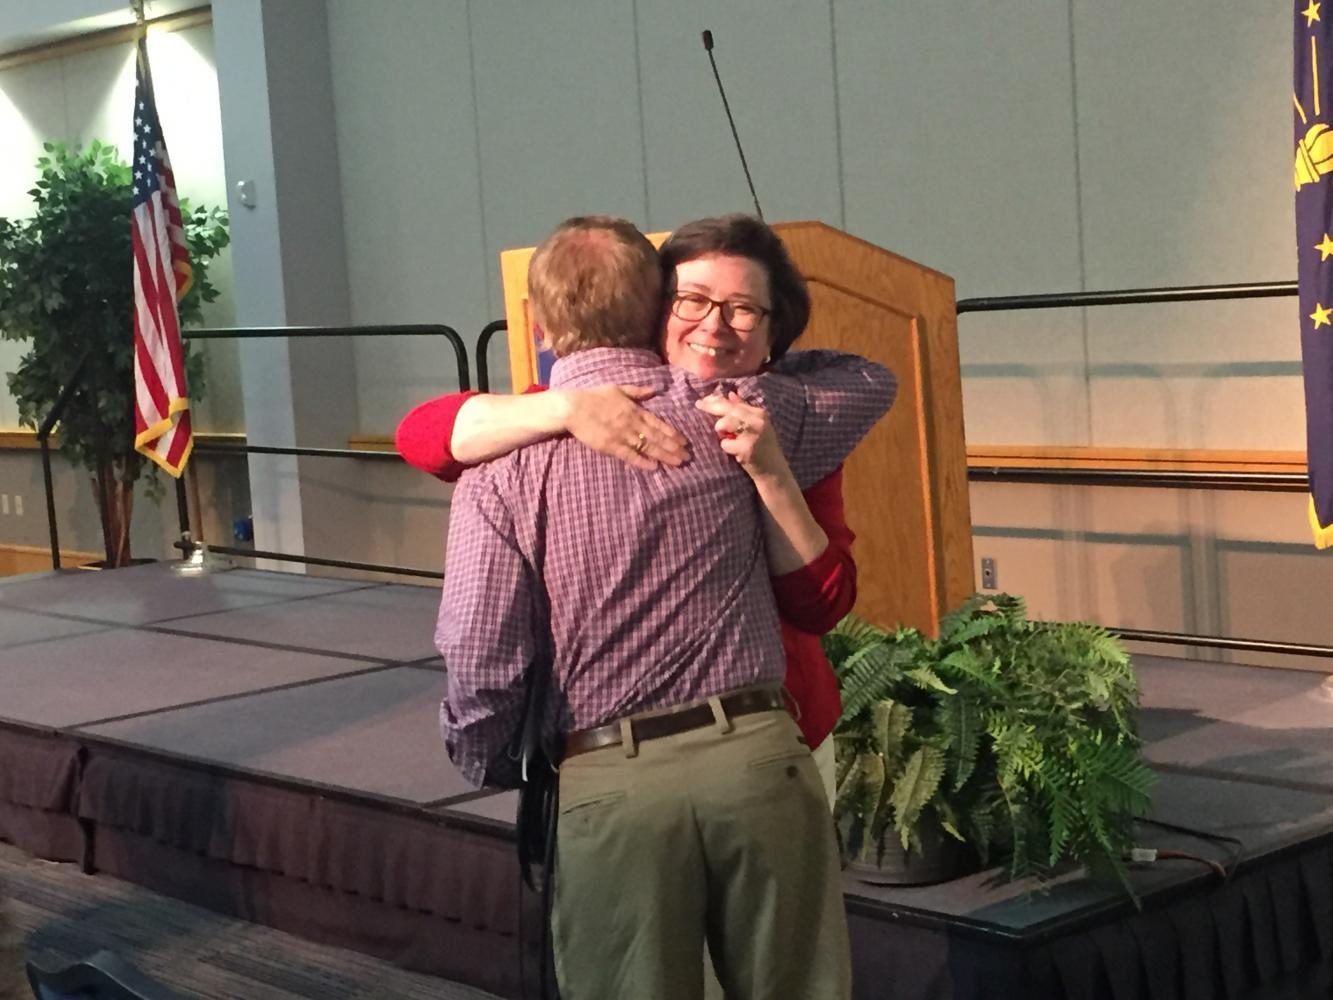 University President shares a hug after announcing her retirement at an August faculty meeting. The Faculty Senate will vote on candidates to serve on the search committee for the next President of the university following a public forum Friday